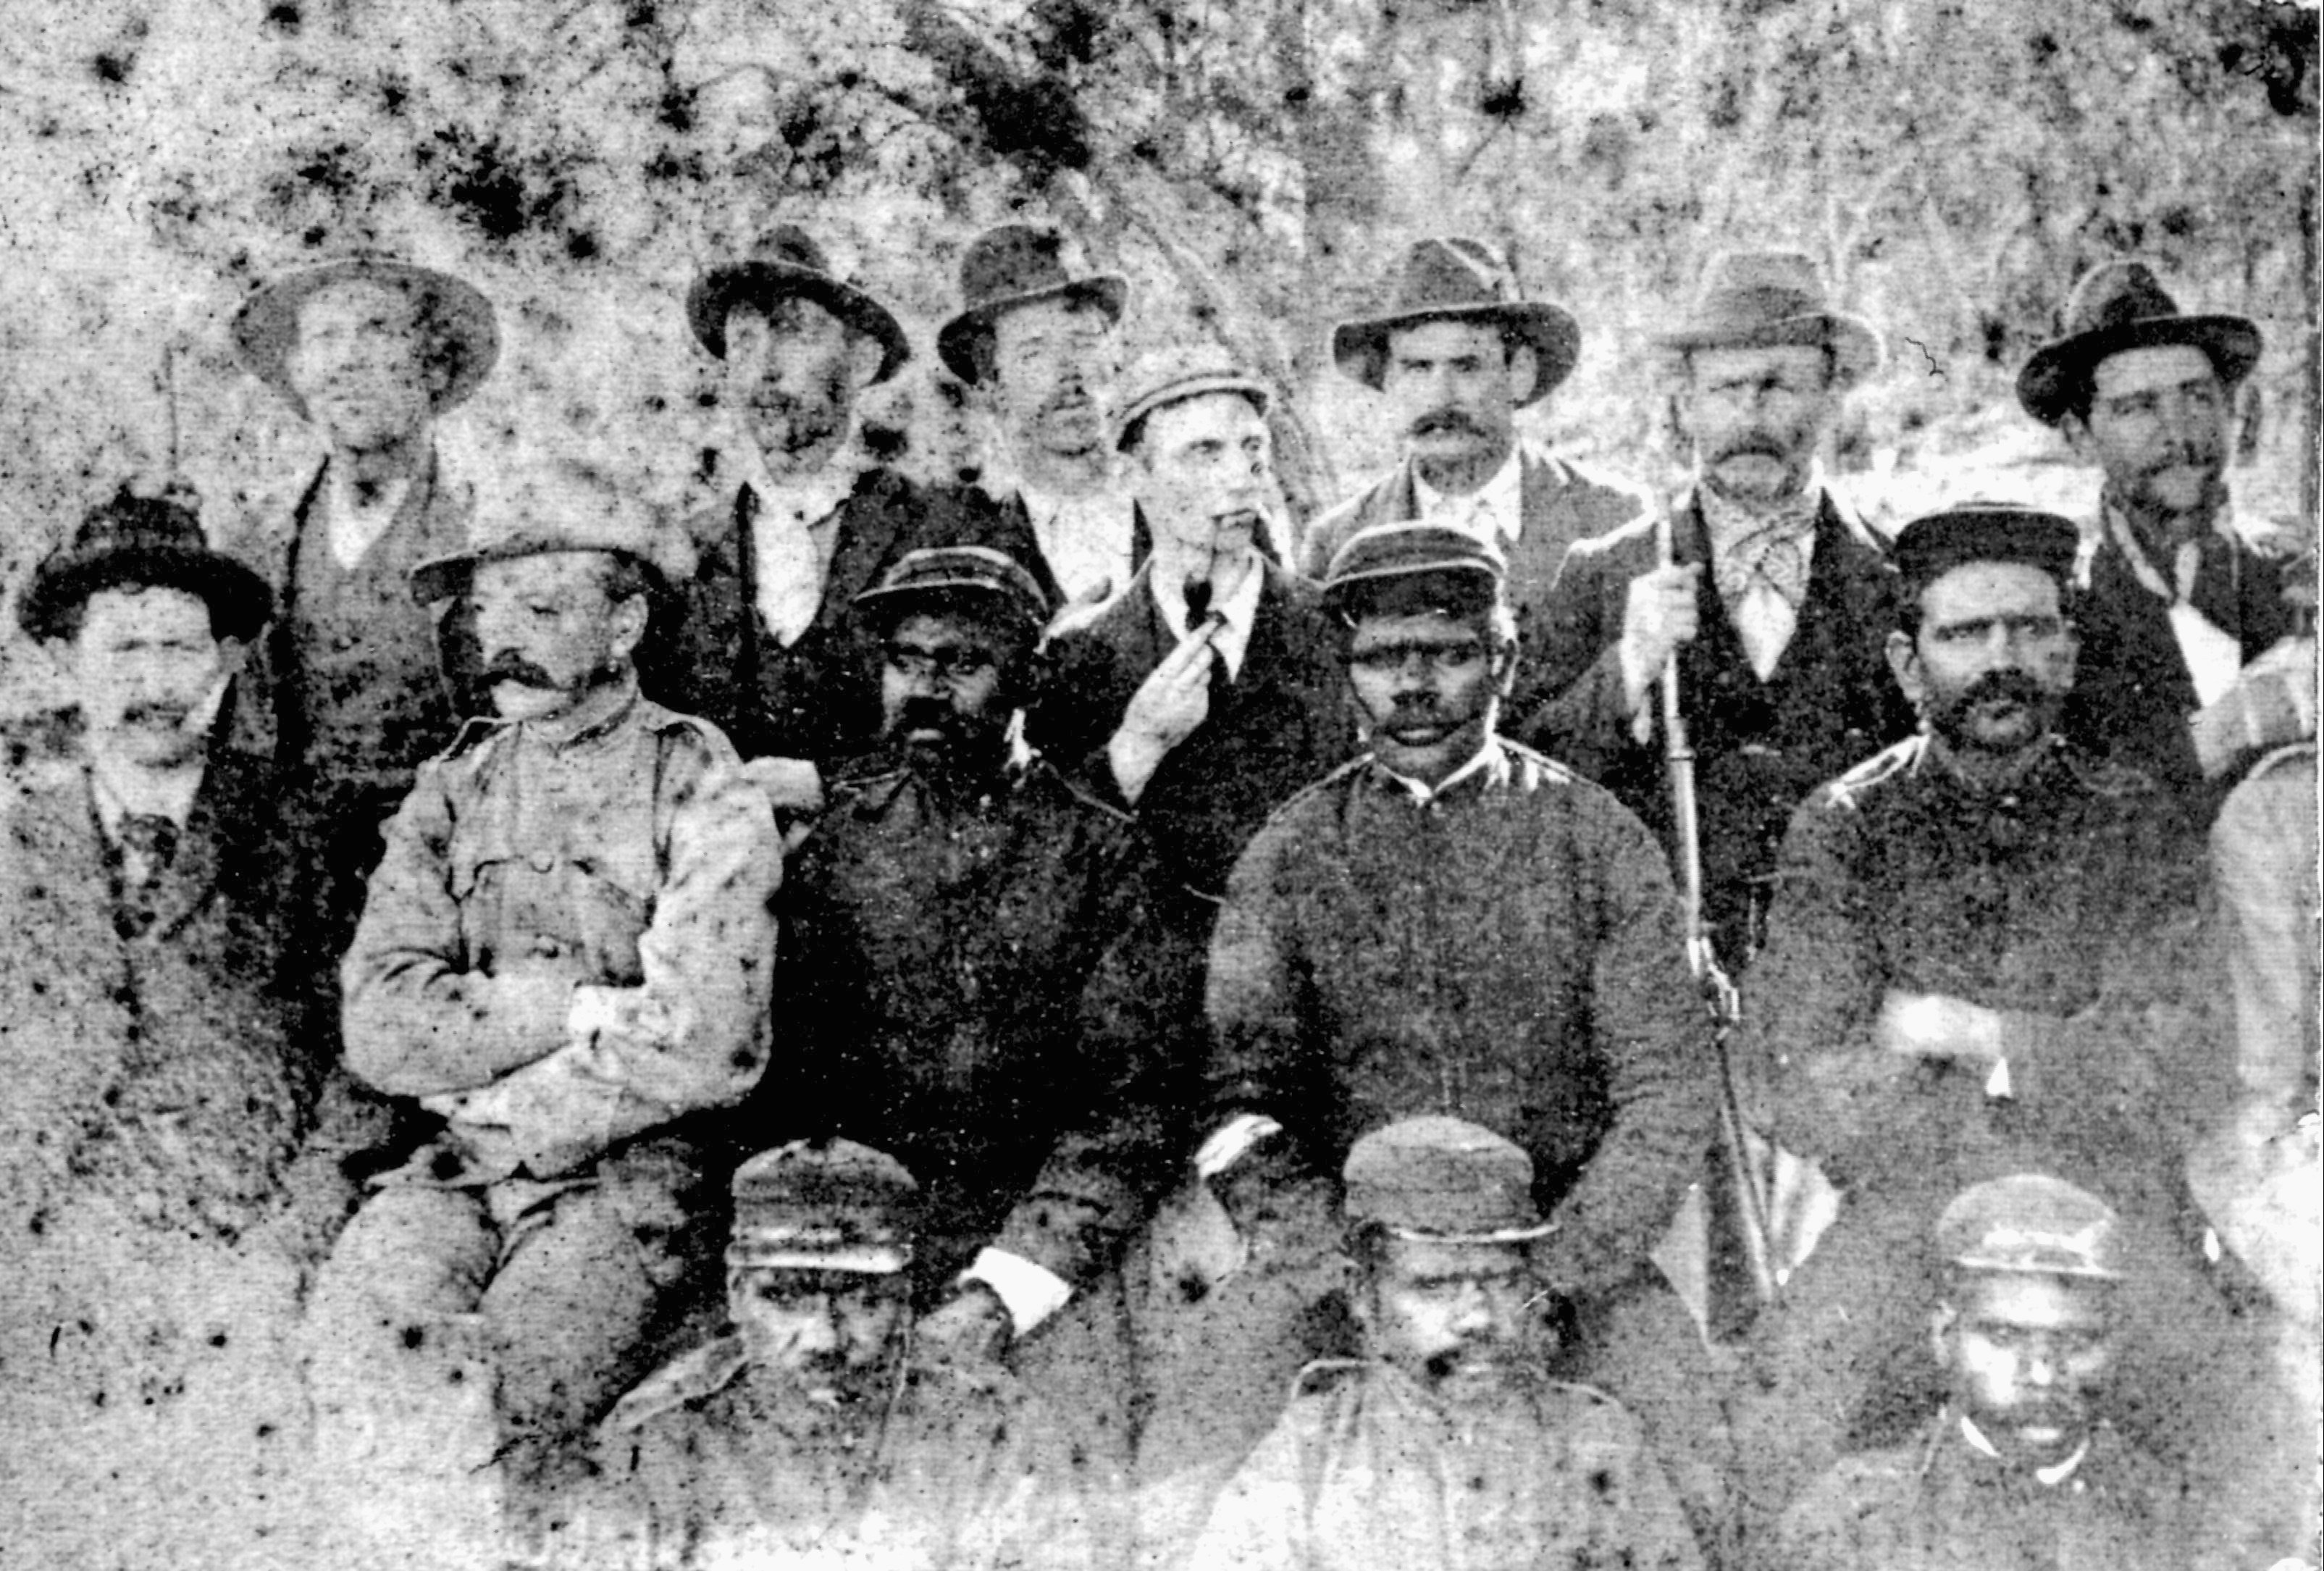 James Gillis McDonald (middle row, 3rd from left)